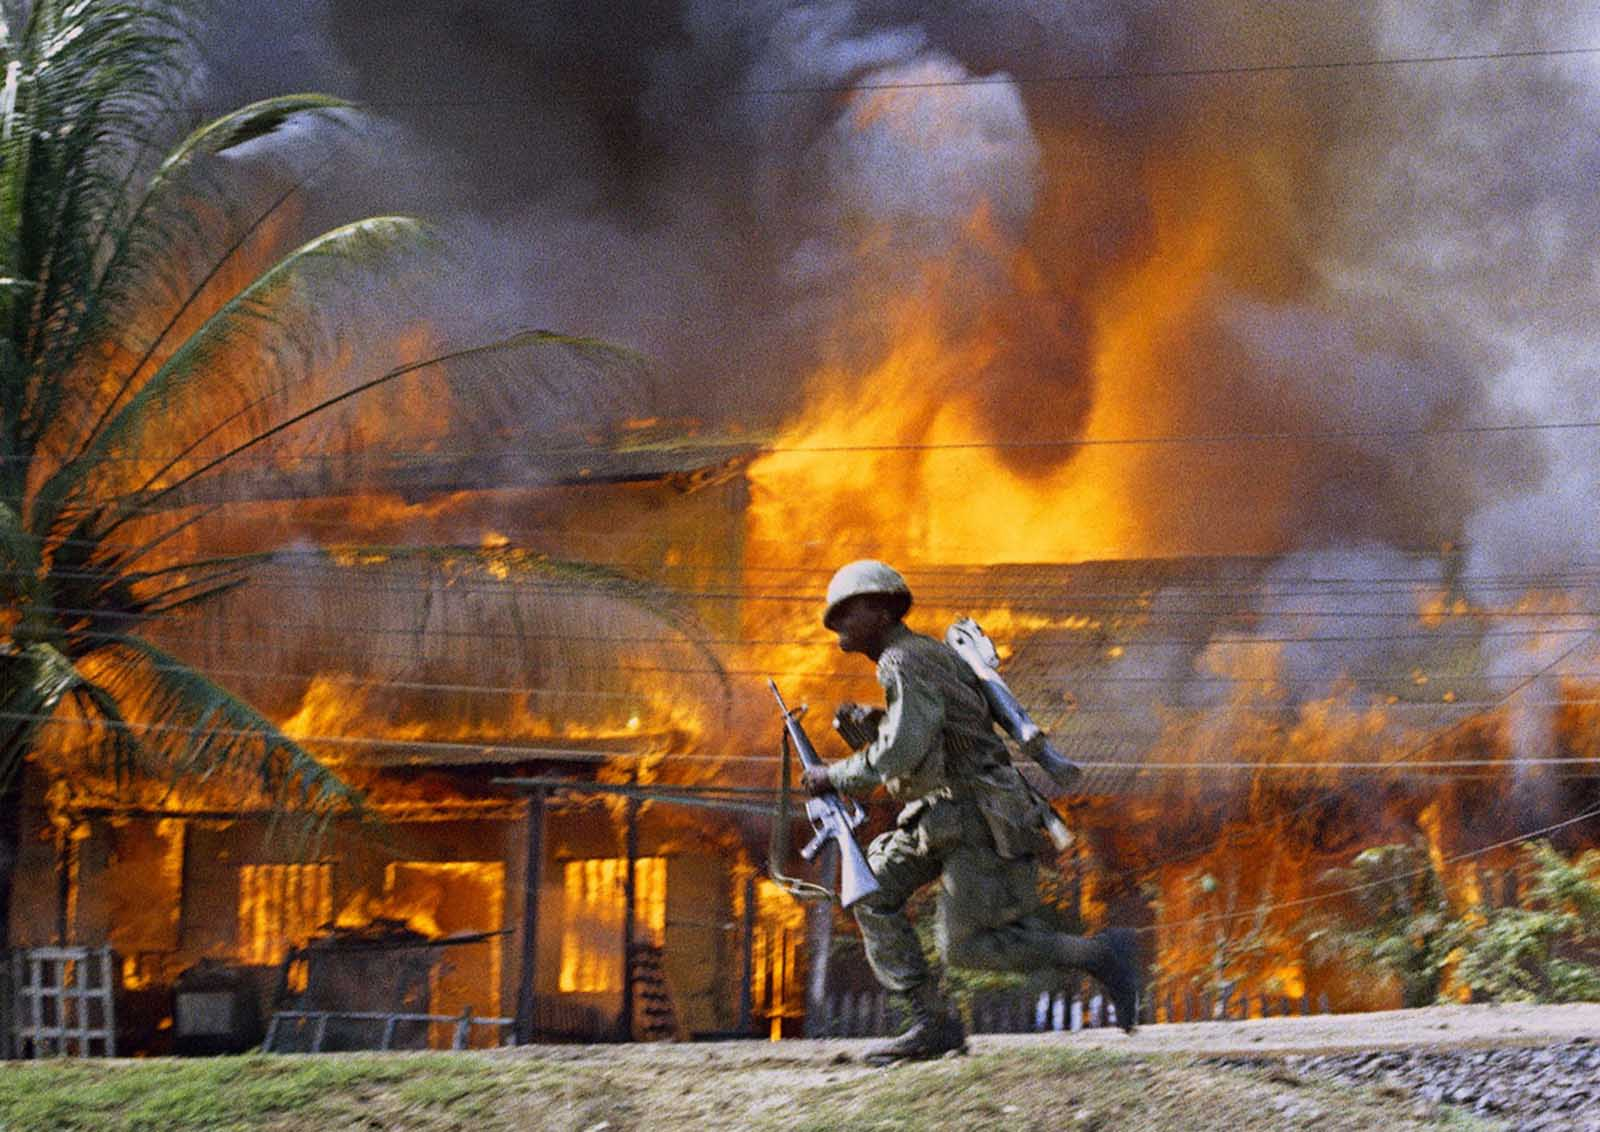 A U.S. trooper runs past a burning building in Saigon in June of 1968.